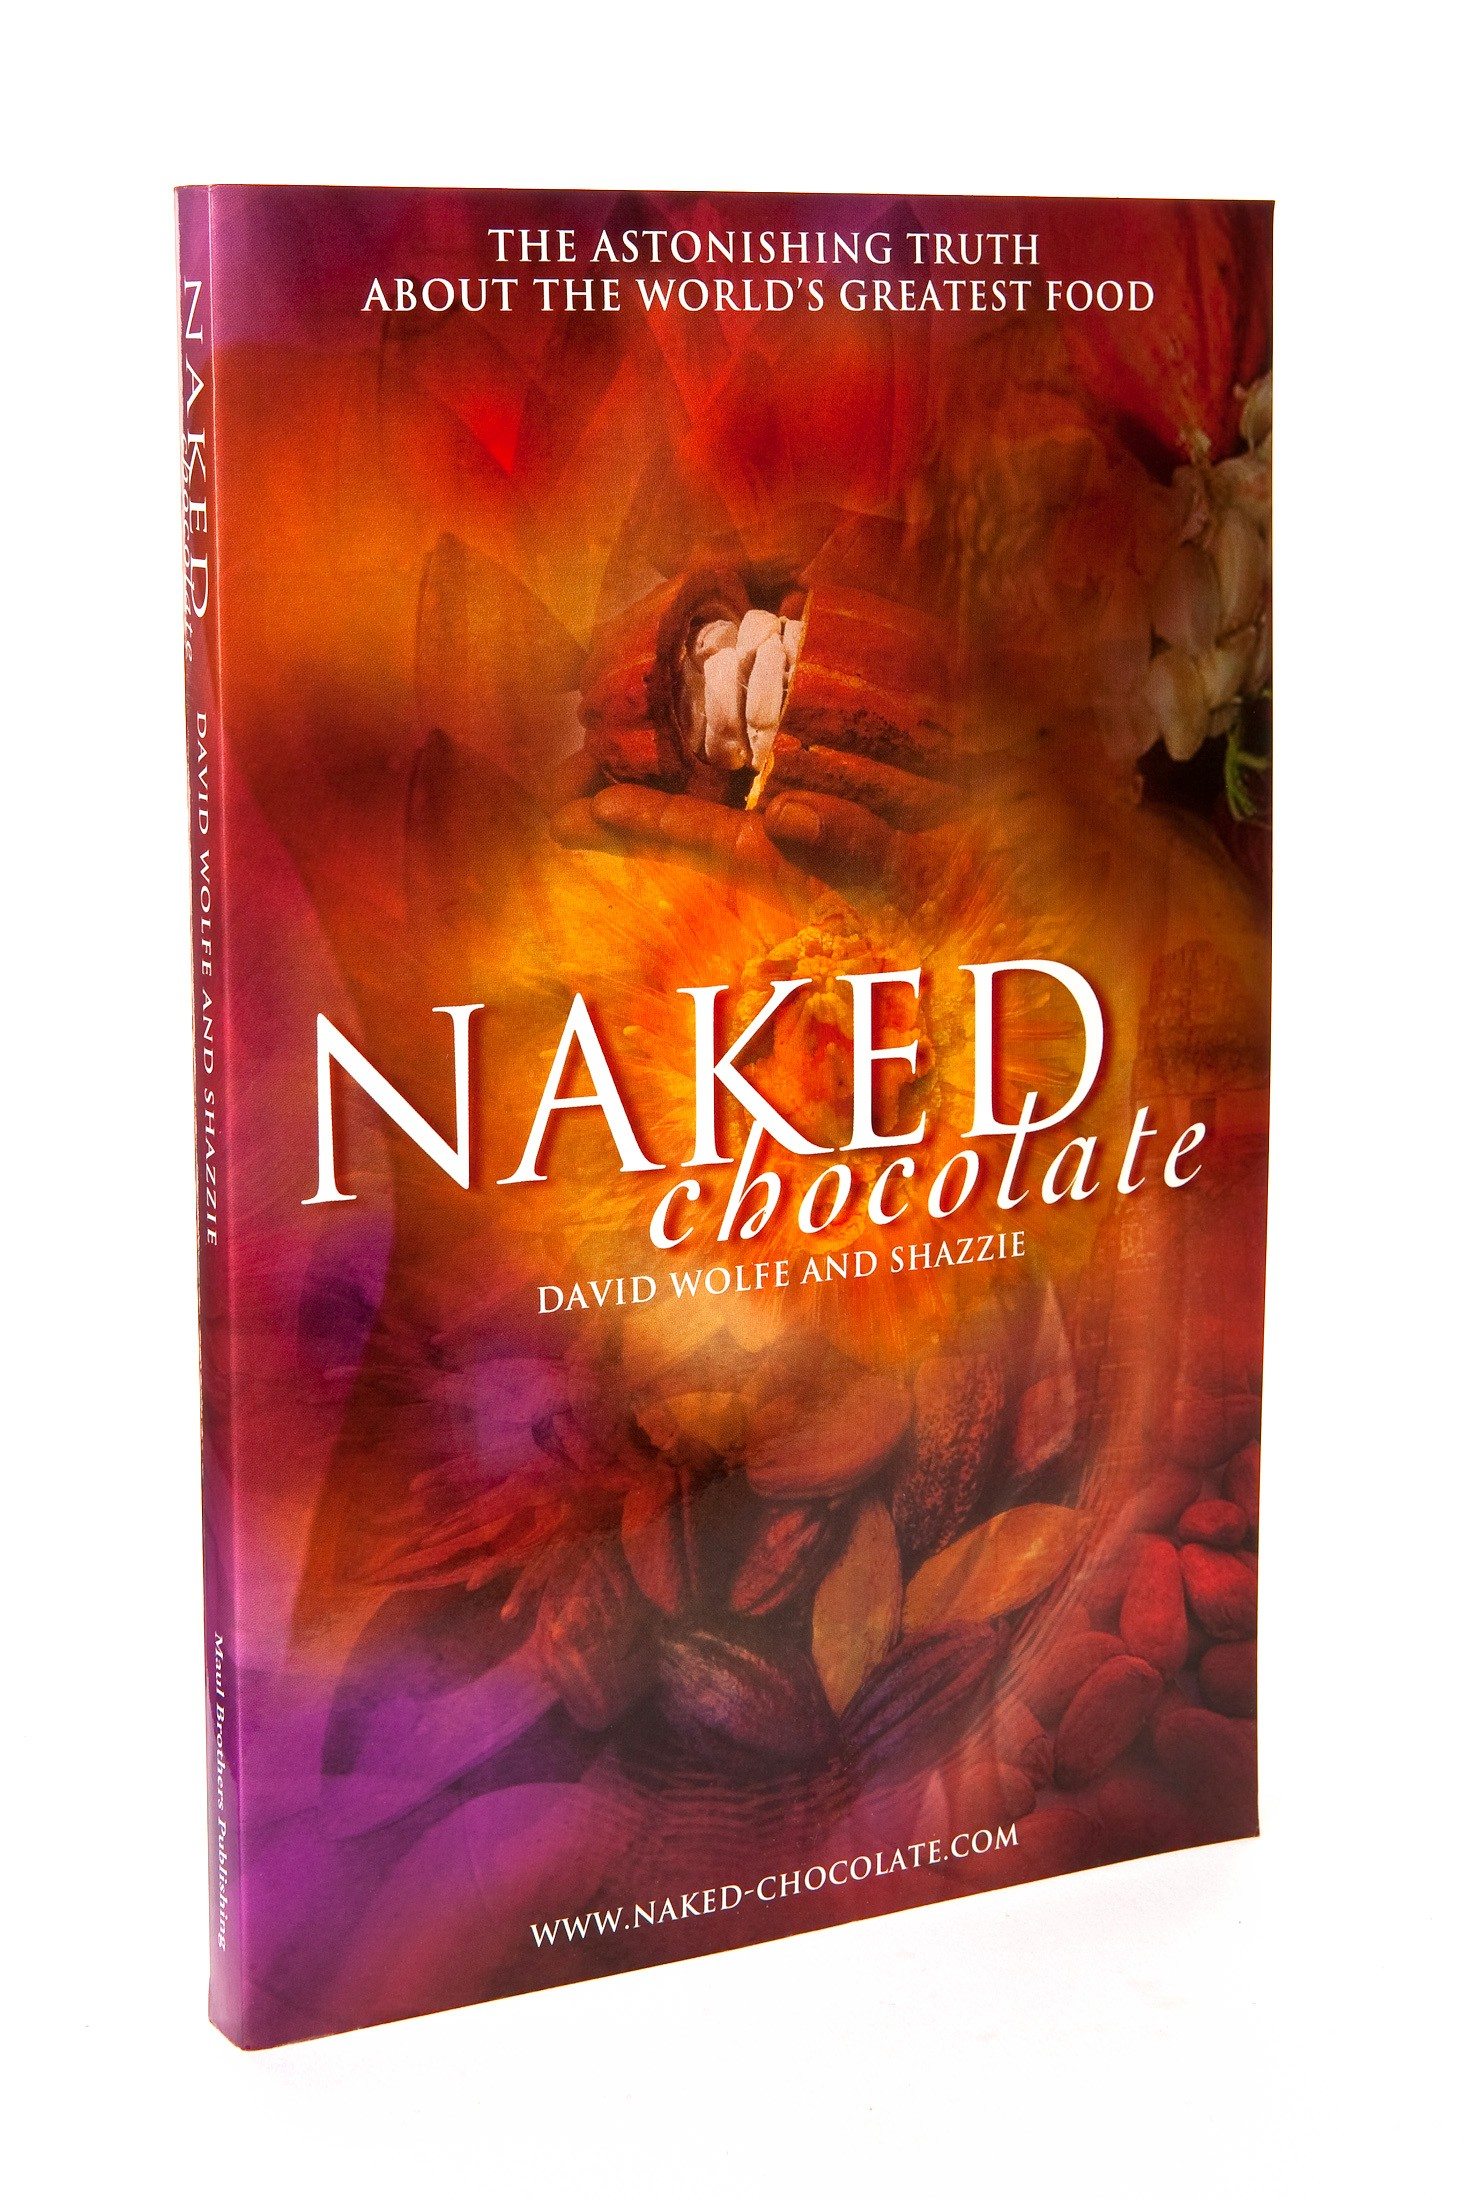 Naked Chocolate: The Astonishing Truth About the World's Greatest Food by David Wolfe